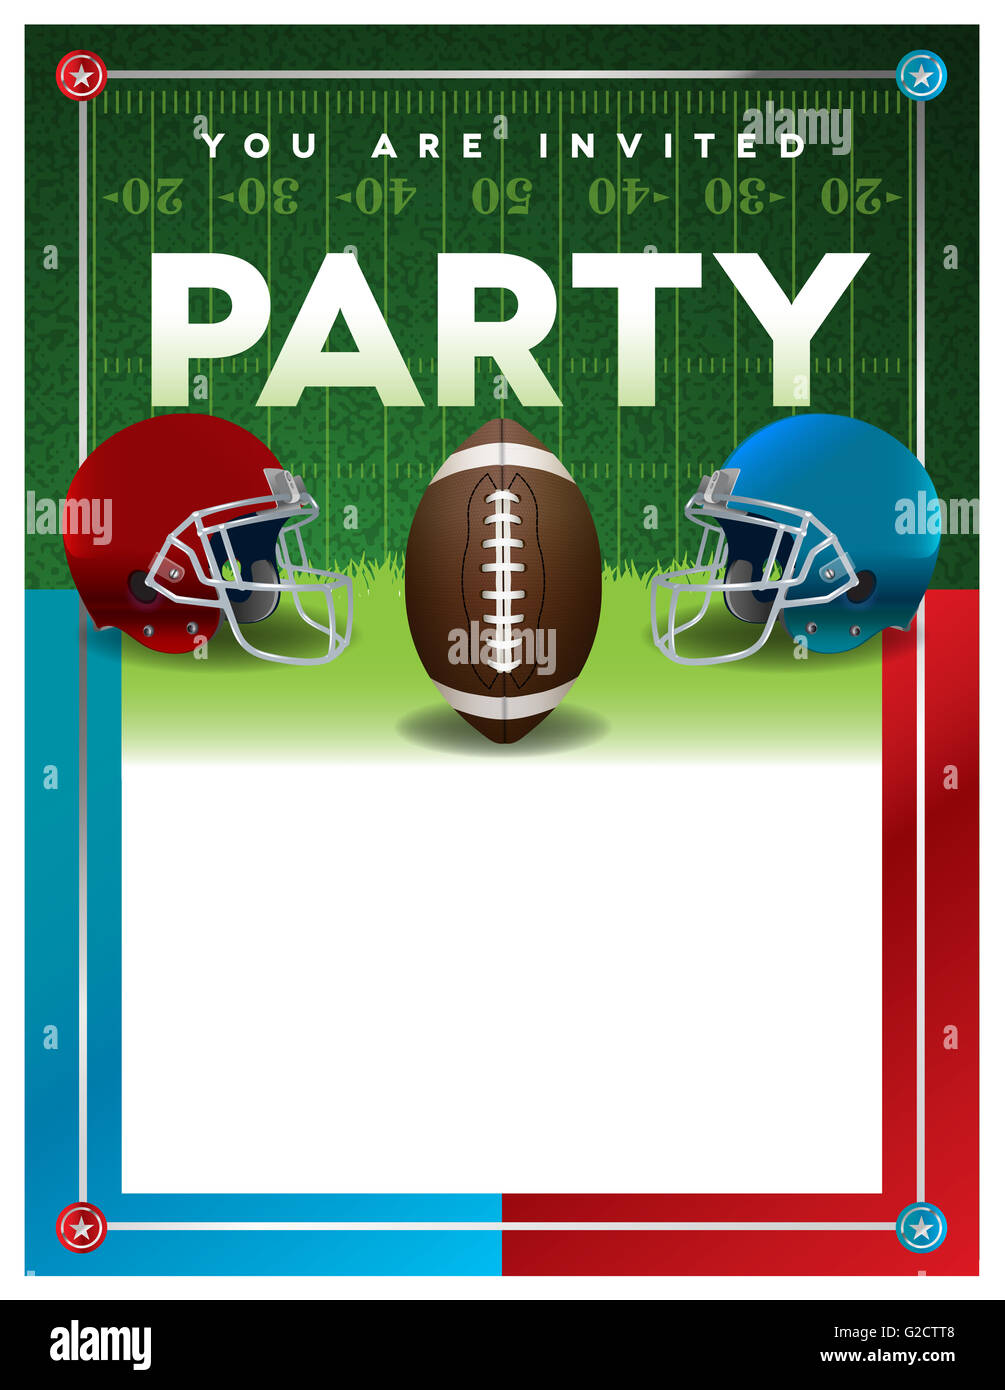 An American football party invitation flyer template design with – Party Invitation Flyer